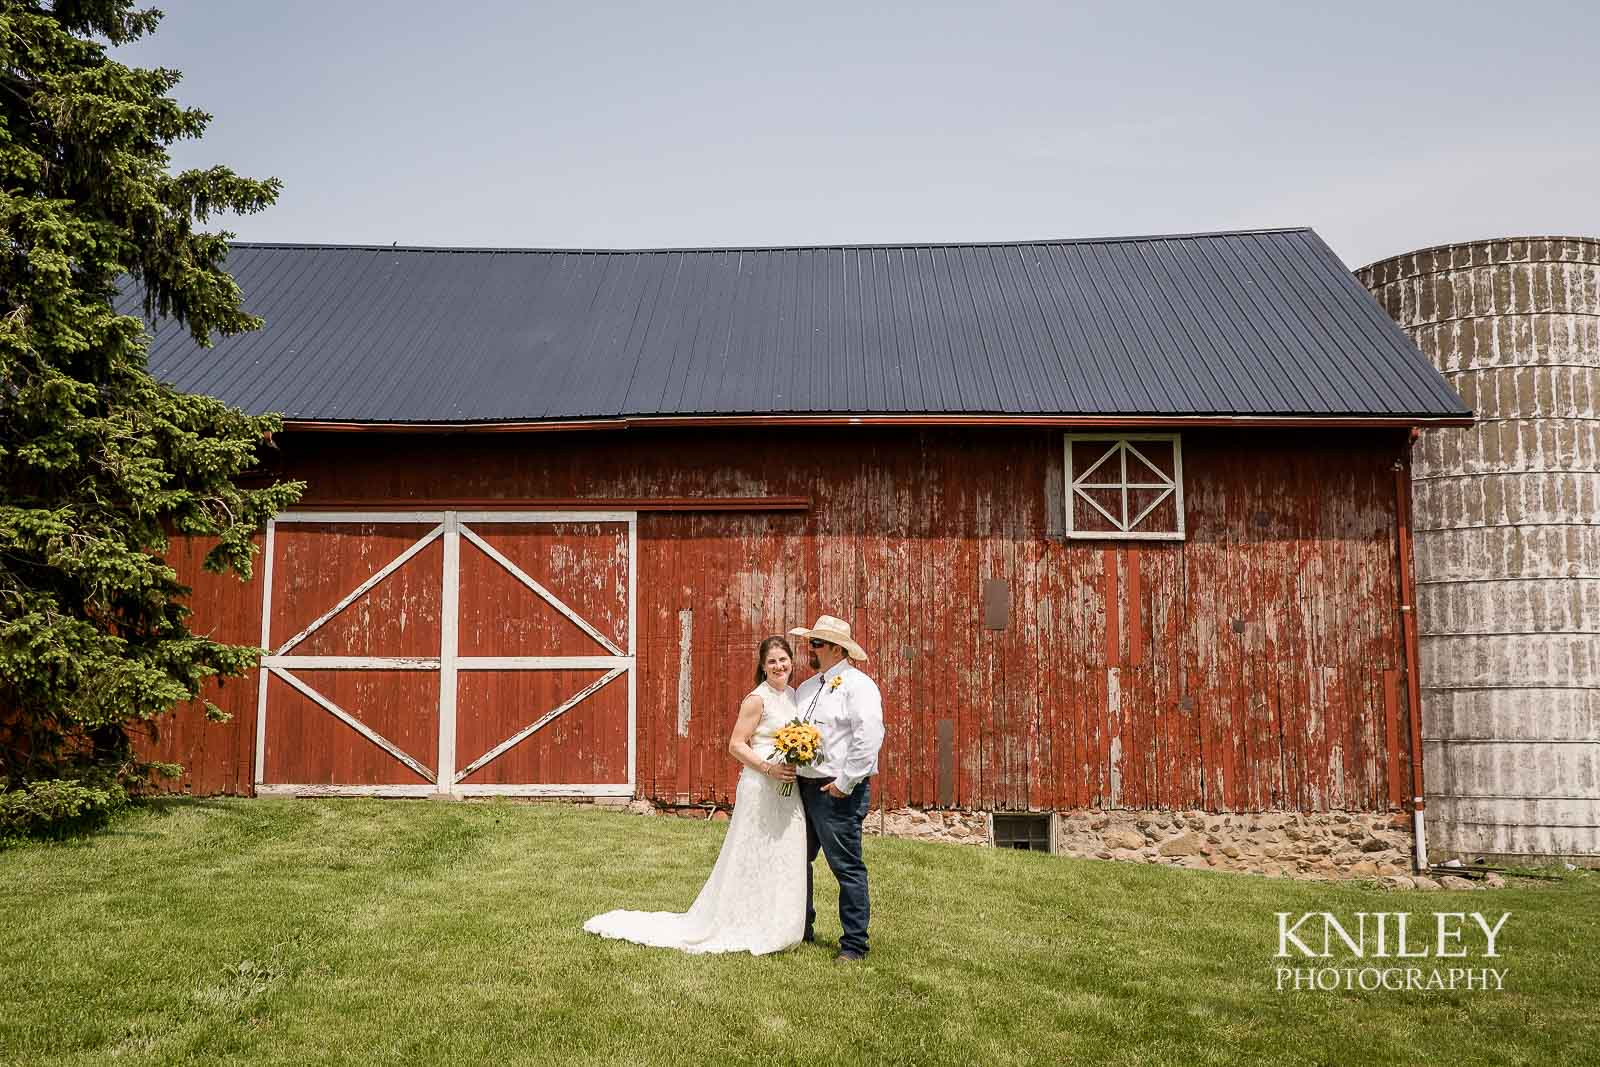 24-Western-New-York-farm-wedding-Kniley-Photography.jpg